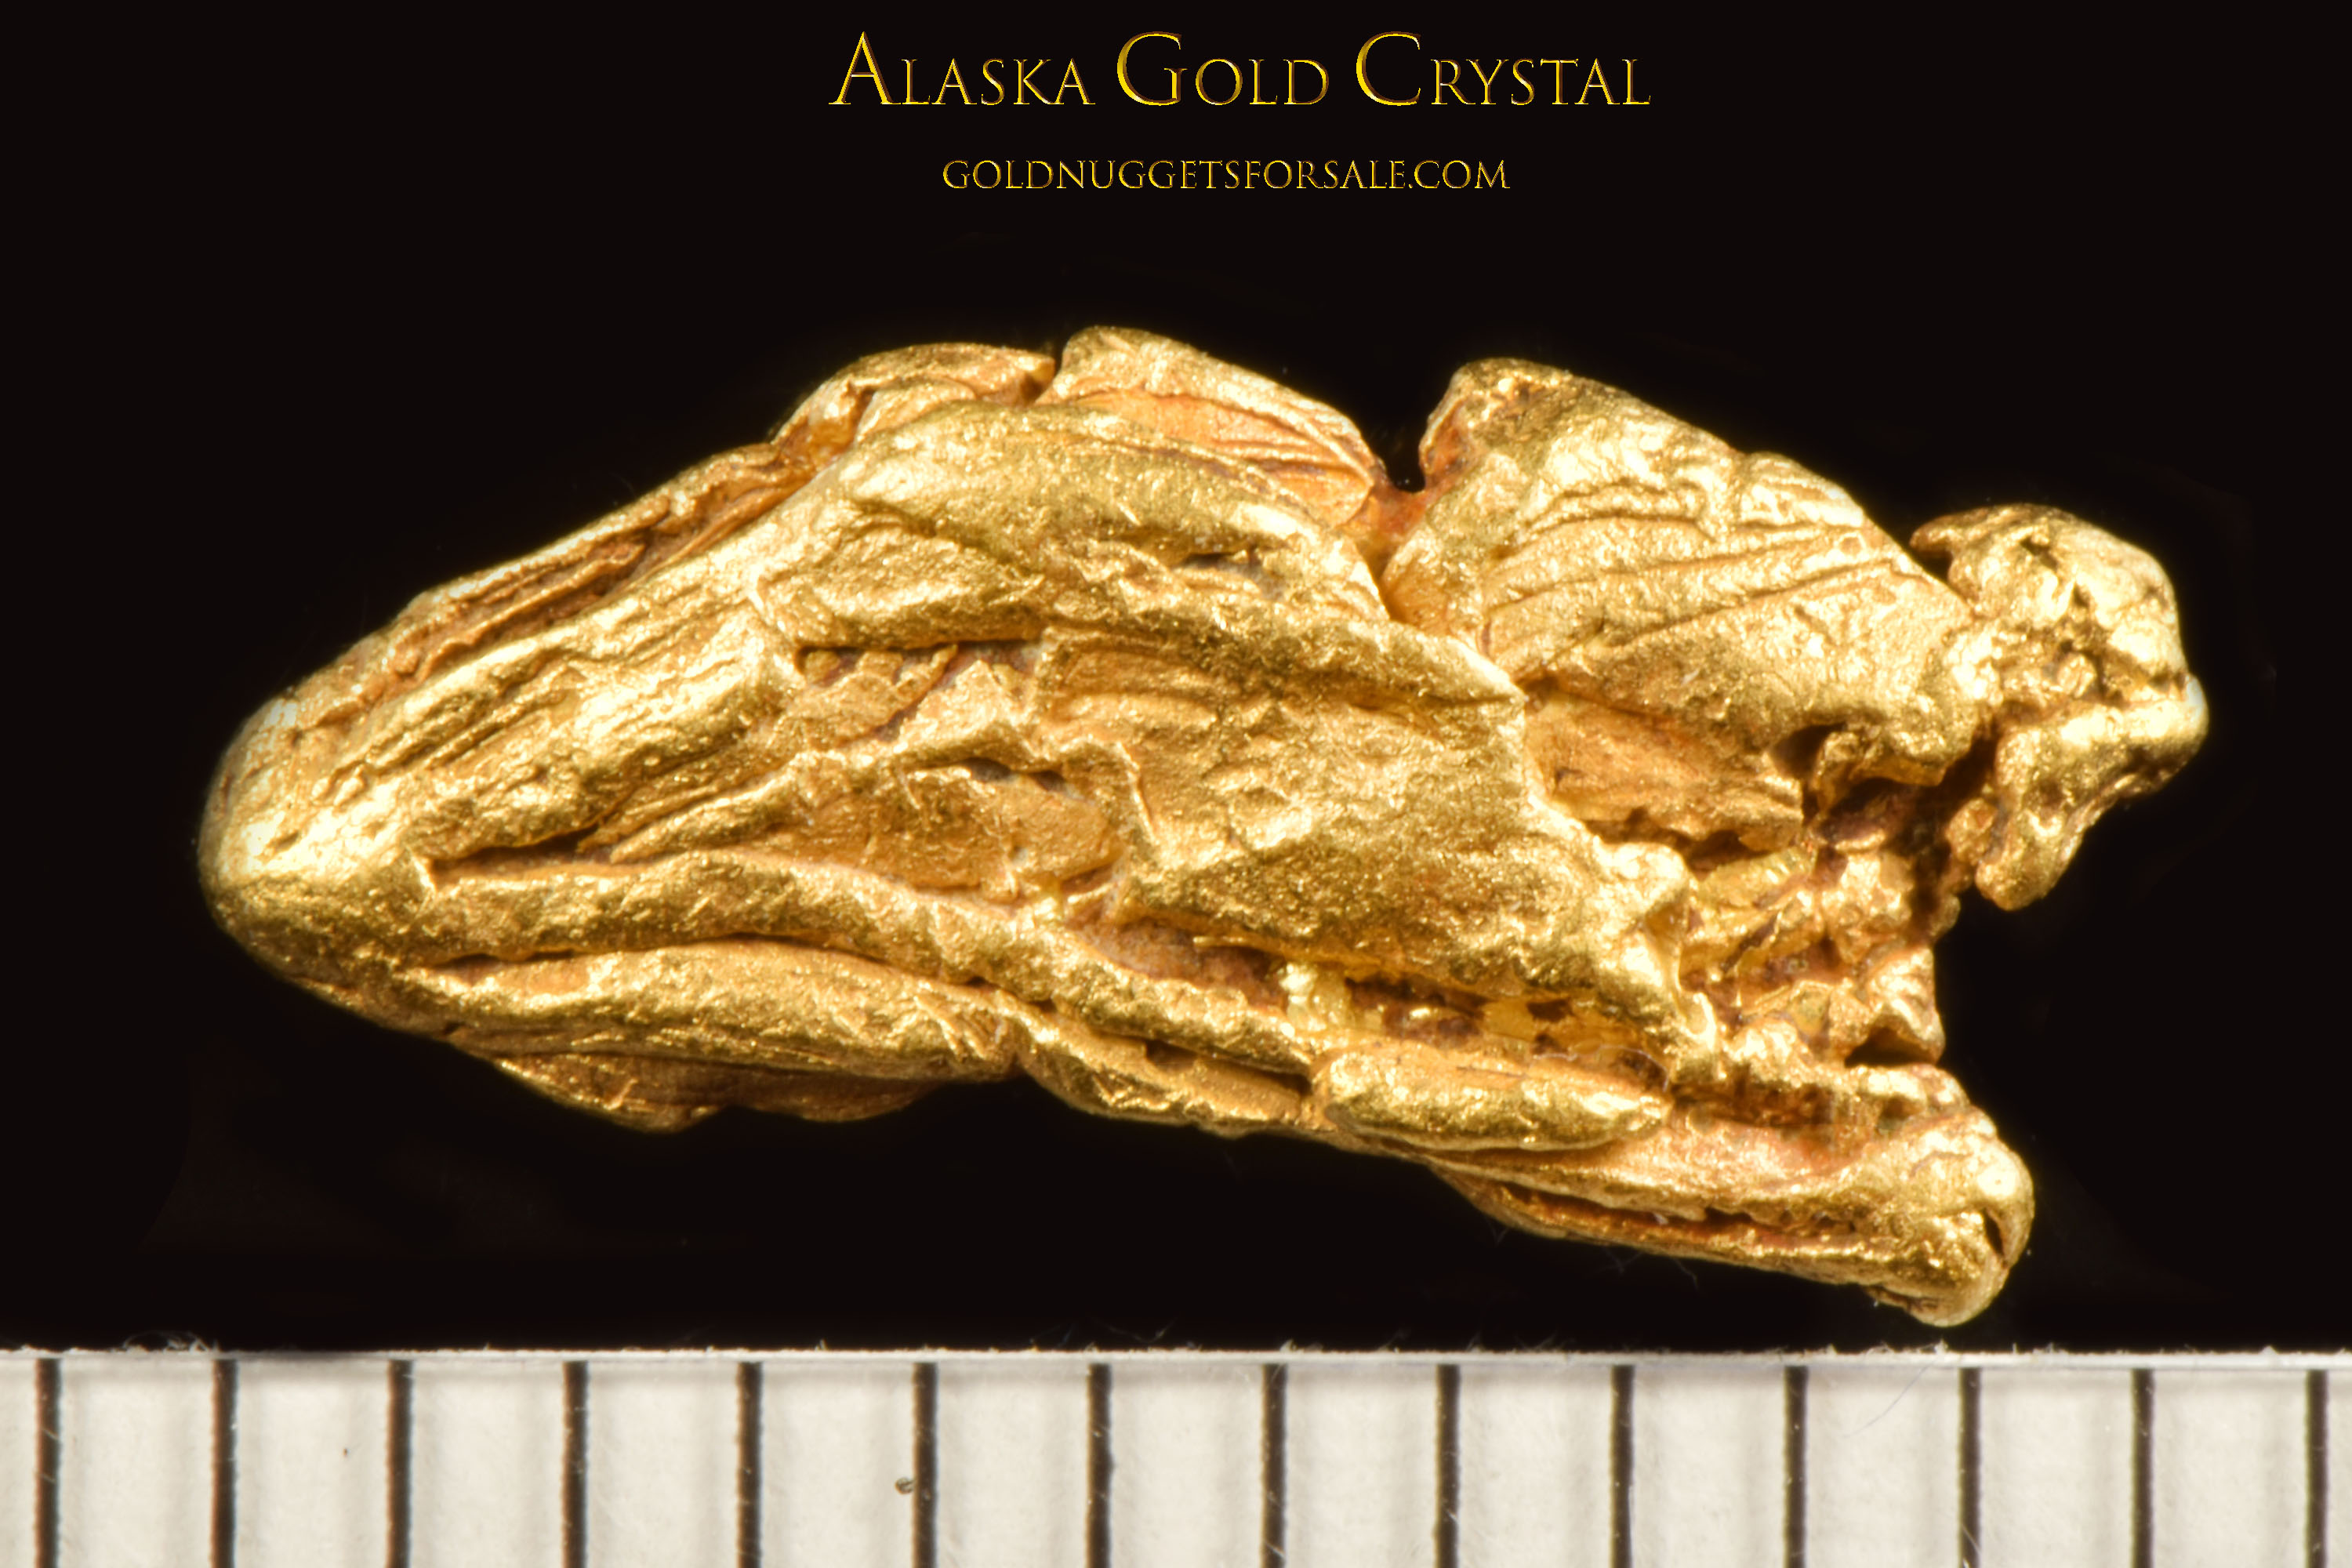 Amazing Gold Crystals - Gold Nugget from Alaska